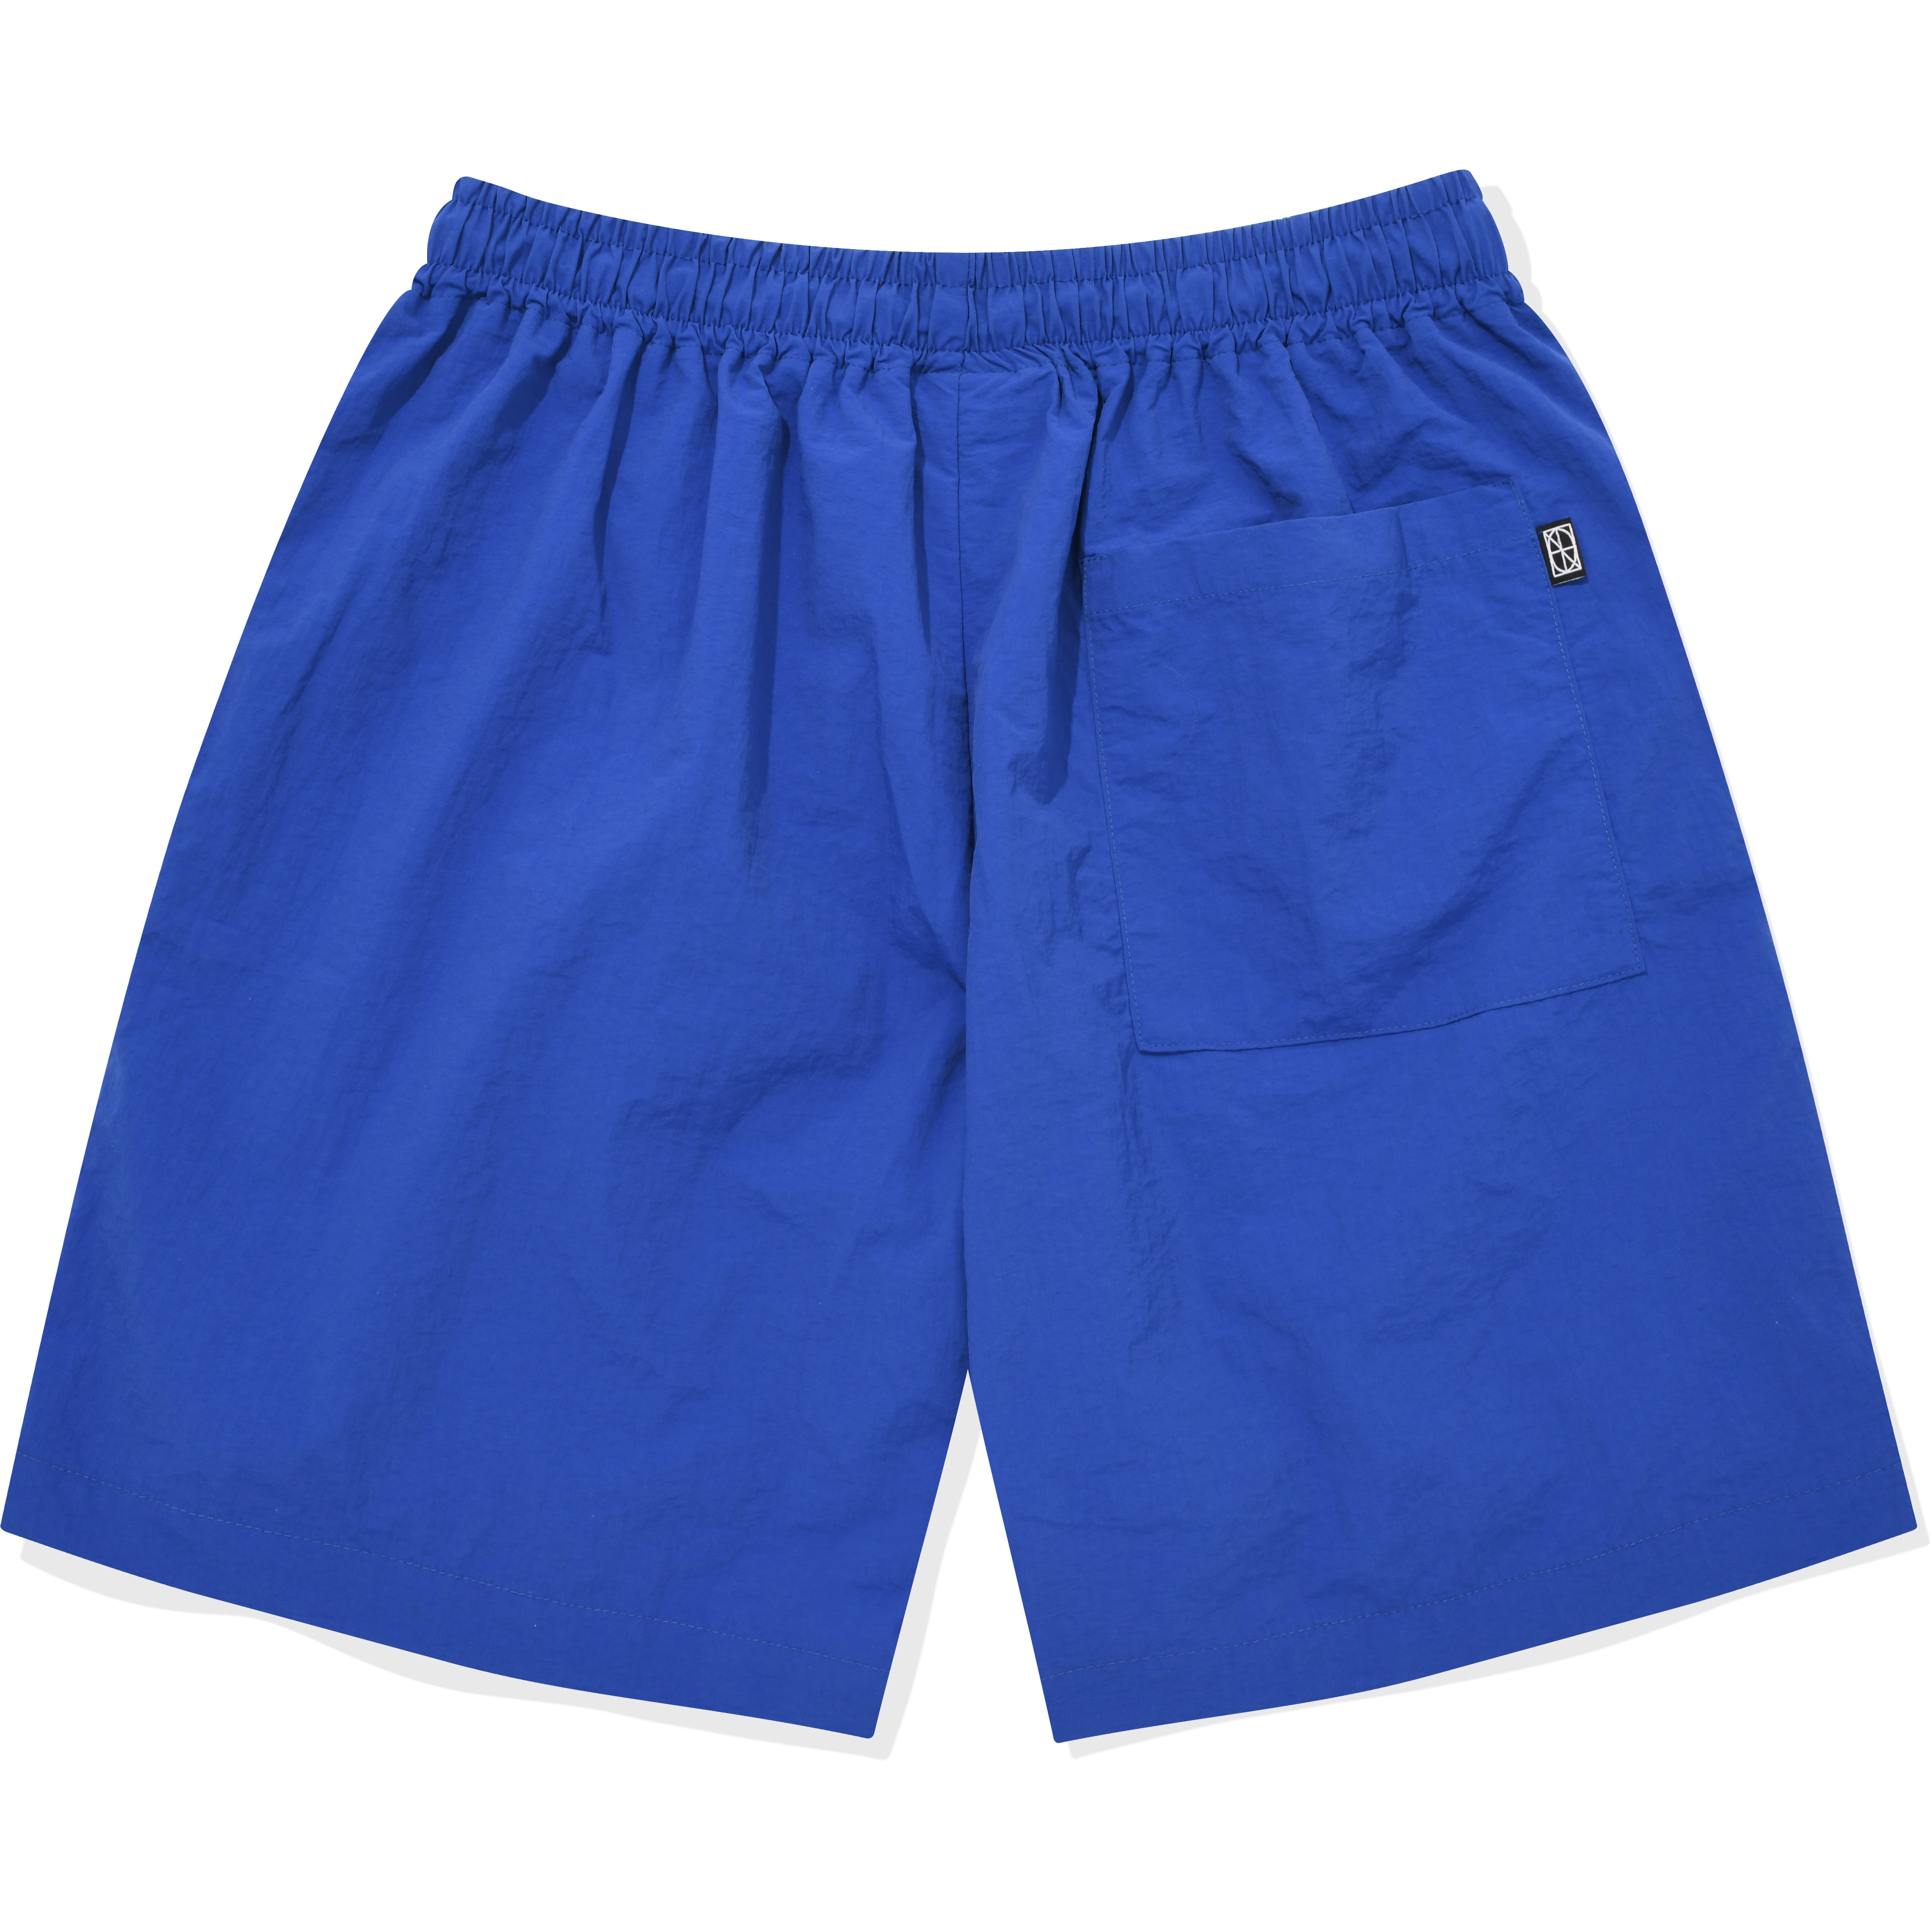 Nylon Zipper Short Blue,NOT4NERD